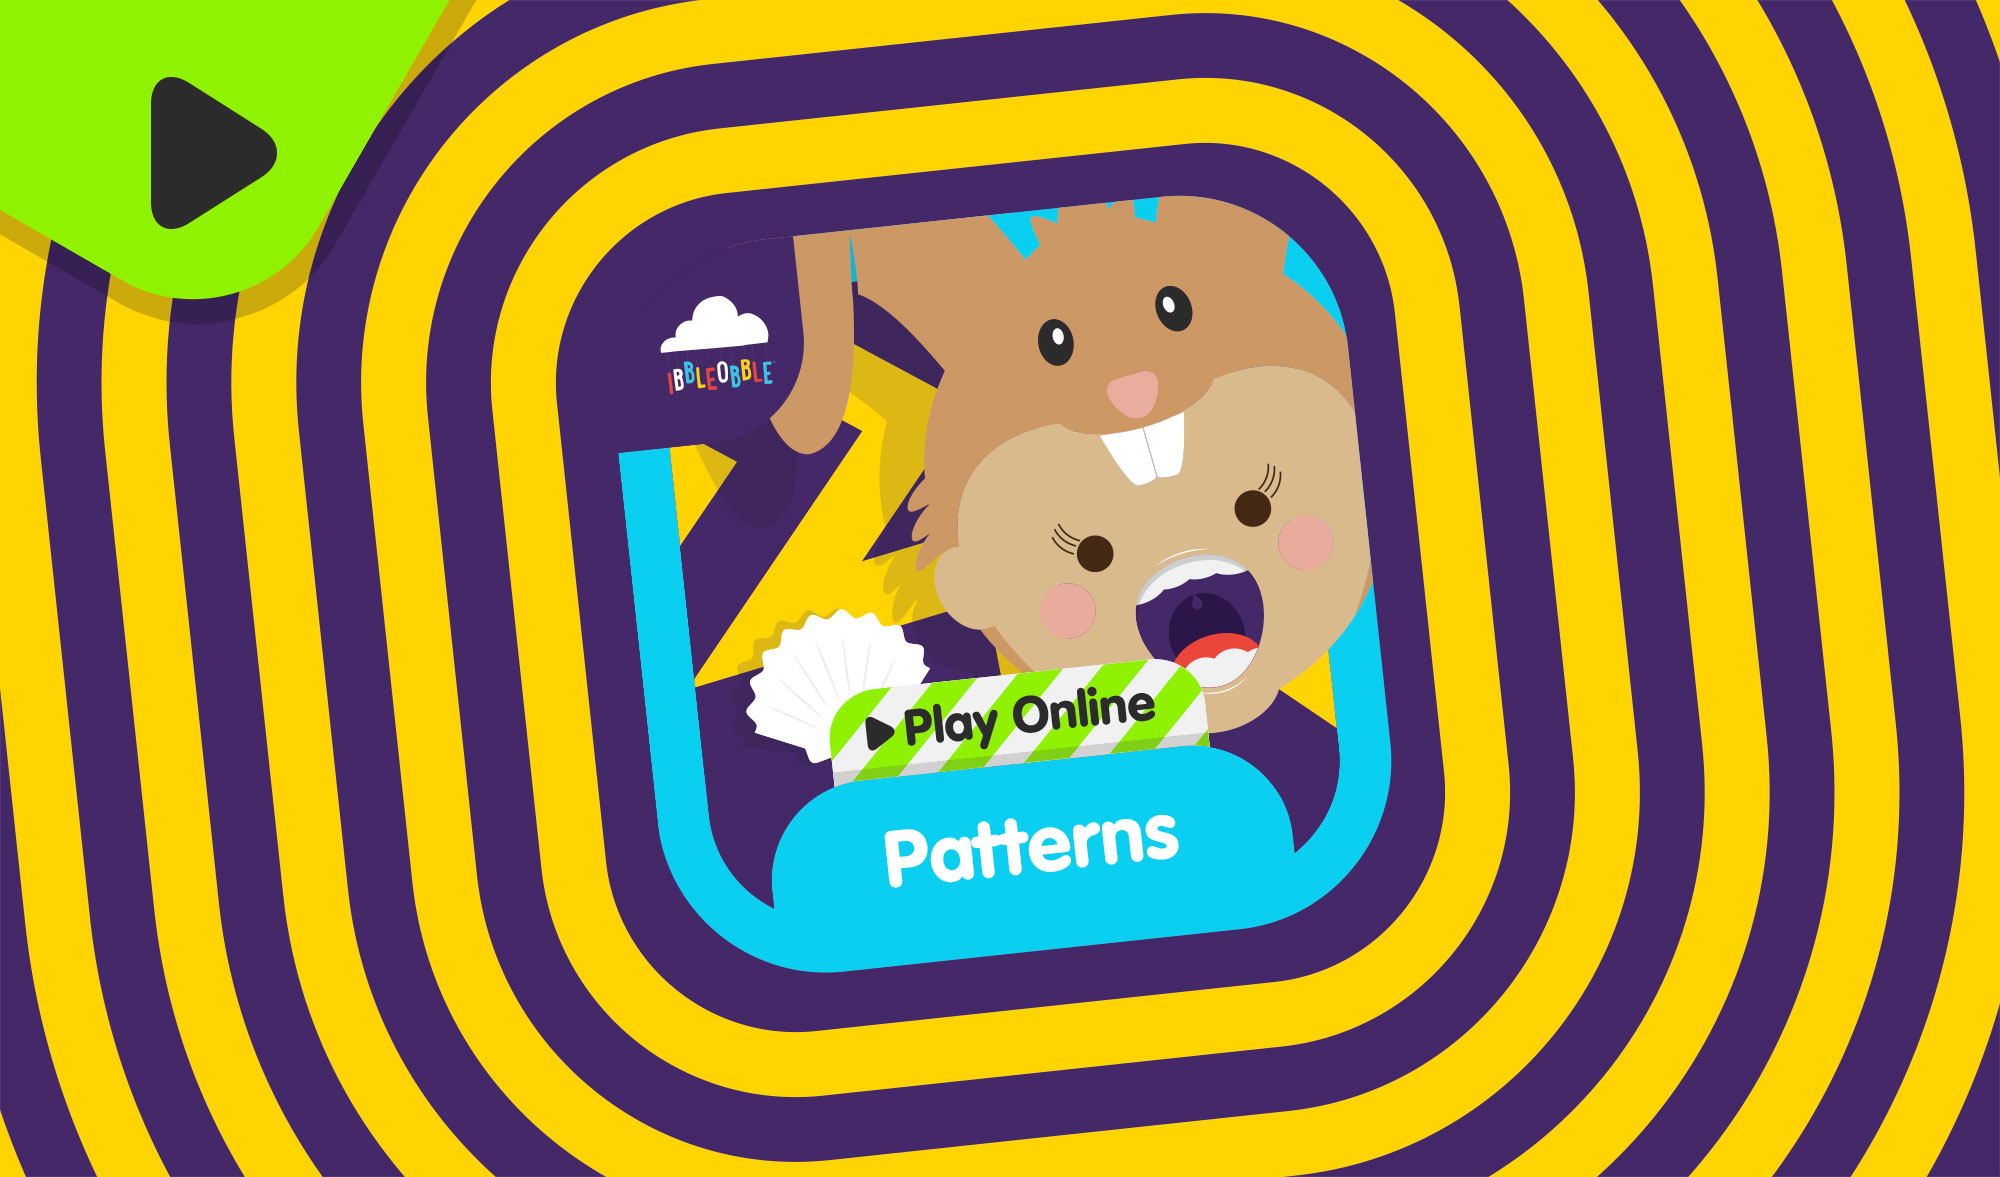 Play Patterns With Ibbleobble Online